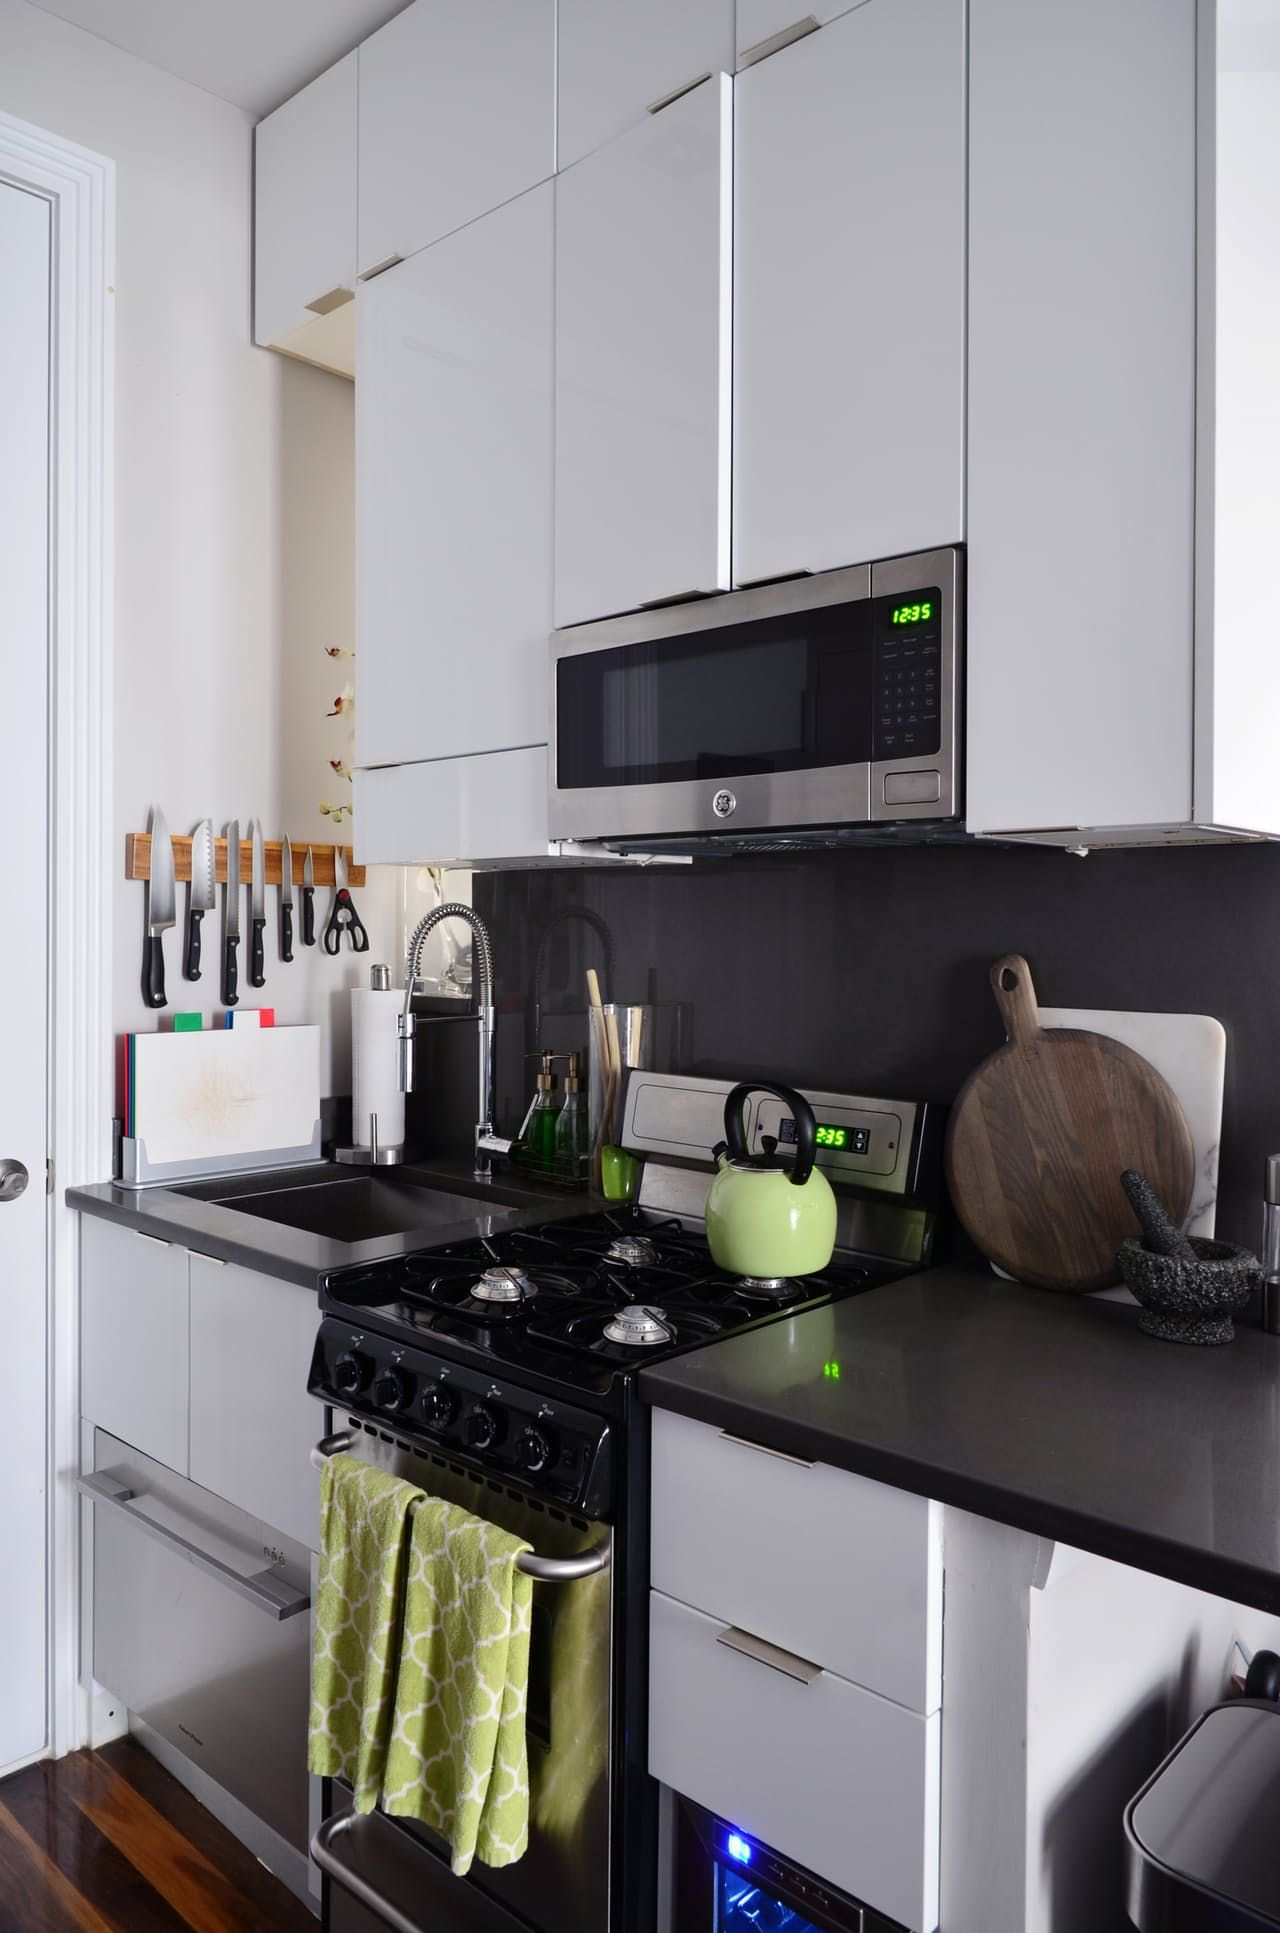 It's Truly Amazing How Much Fits in This 200-Square-Foot ...